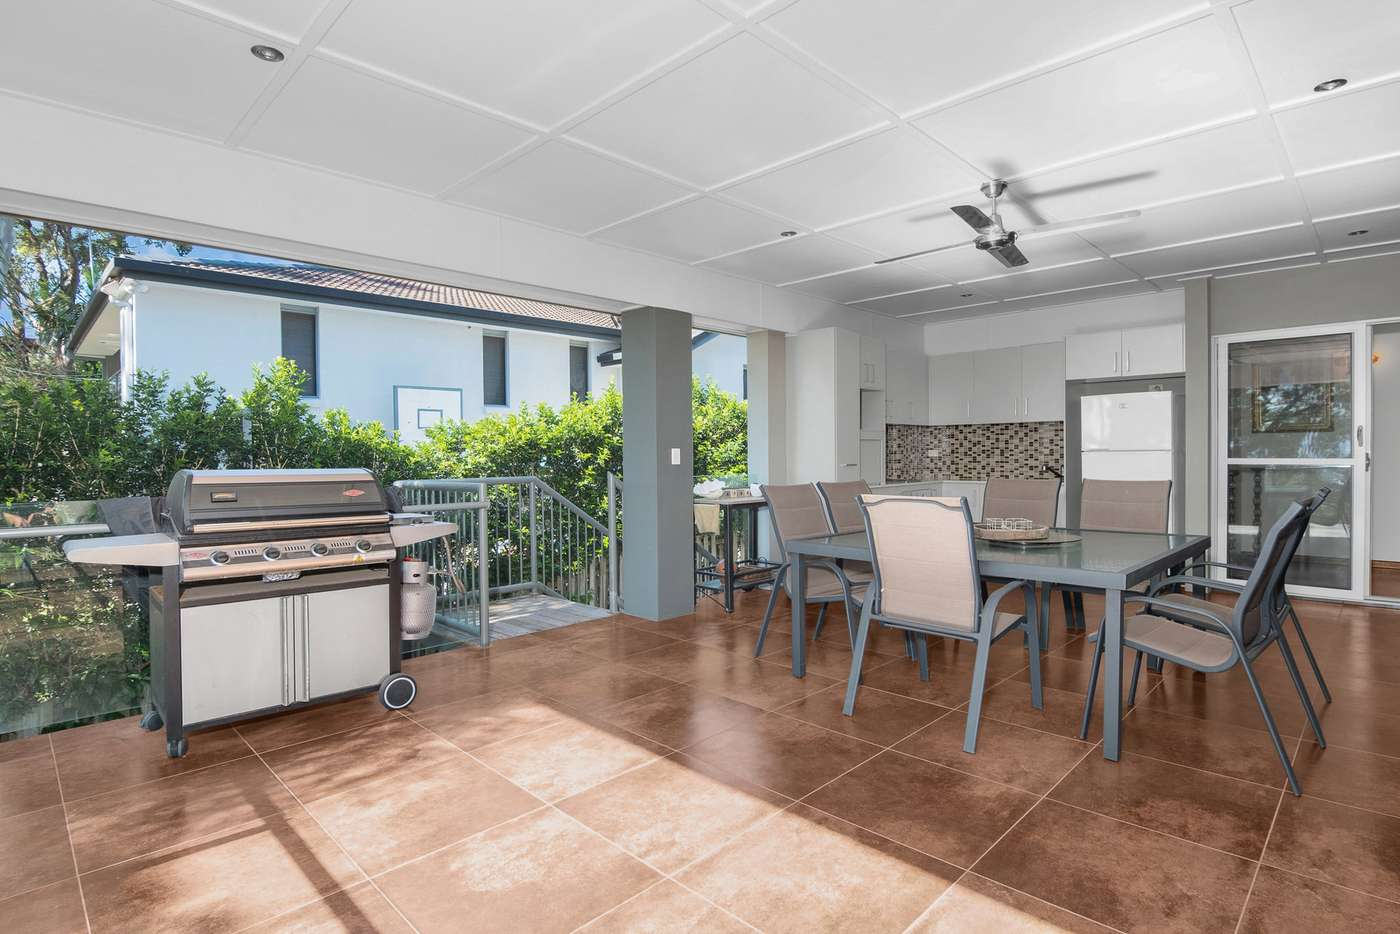 Fifth view of Homely house listing, 26 Wairoo Street, Burleigh Heads QLD 4220